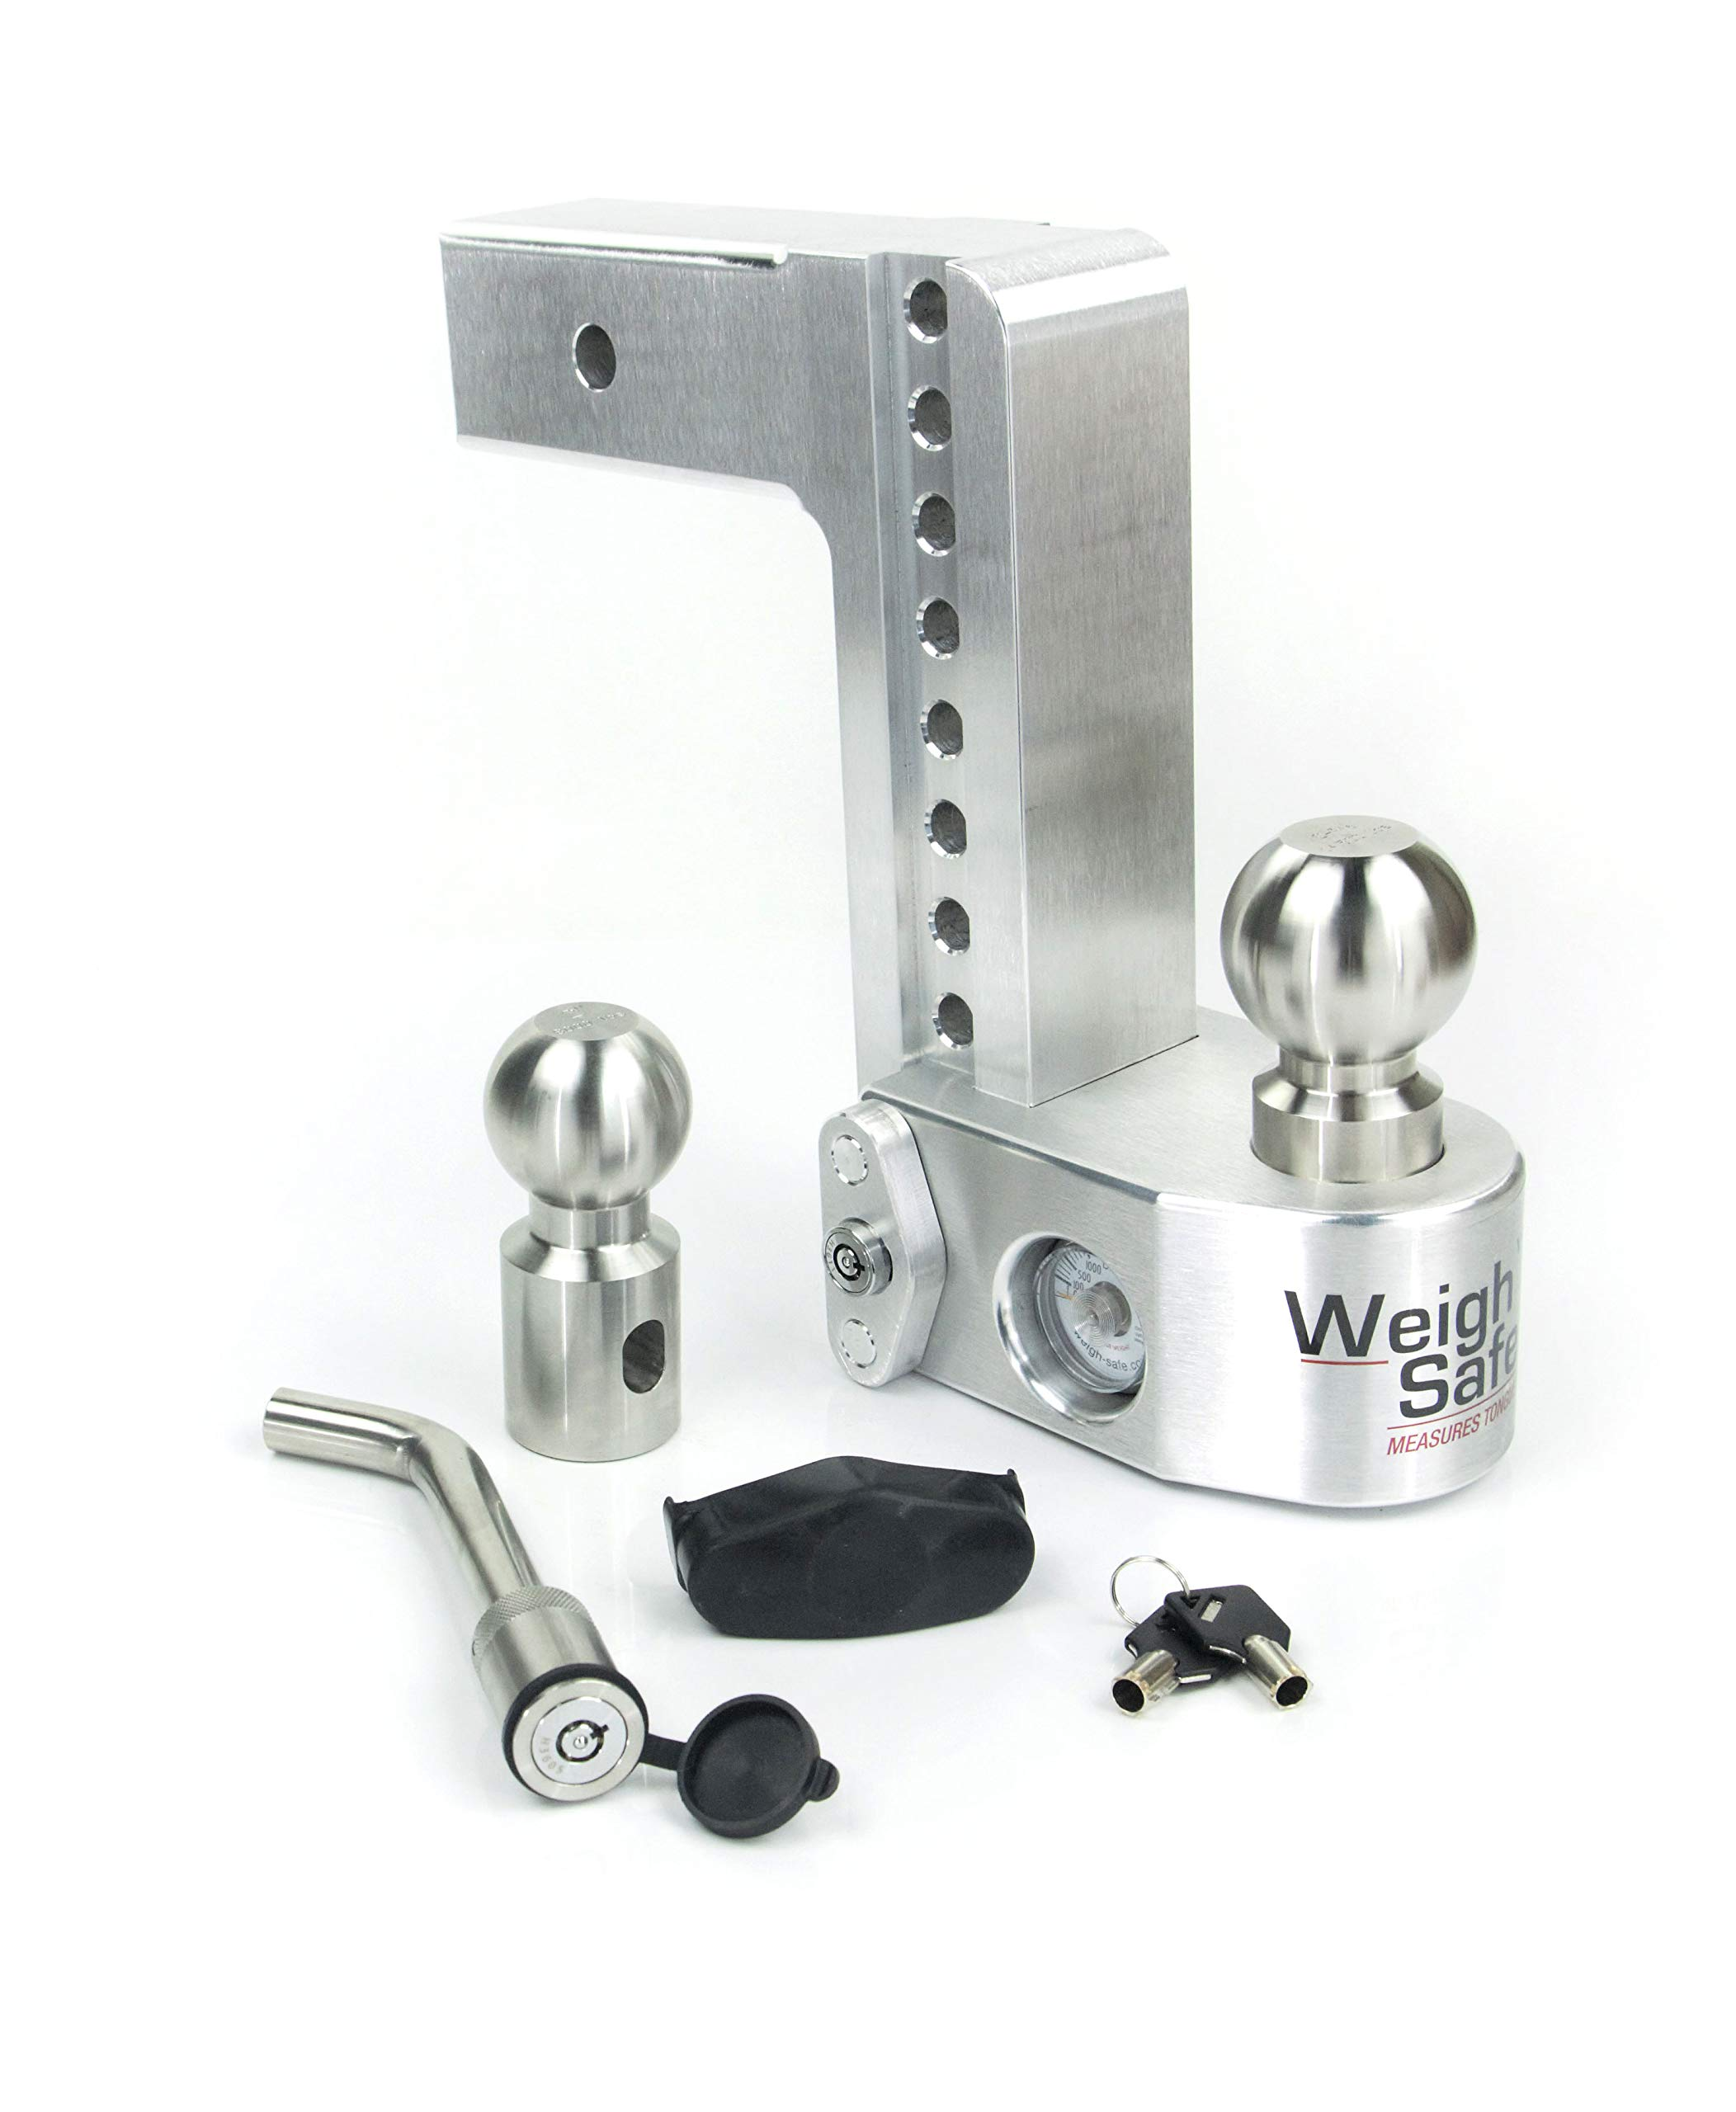 Weigh Safe WS8-2.5-KA, 8'' Drop Hitch w/ 2.5'' Shank/Shaft - Adjustable Aluminum Trailer Hitch & Ball Mount w/Built-in Scale, 2 Stainless Steel Balls (2'' & 2-5/16'') Keyed Alike Key Lock and Hitch Pin by Weigh Safe